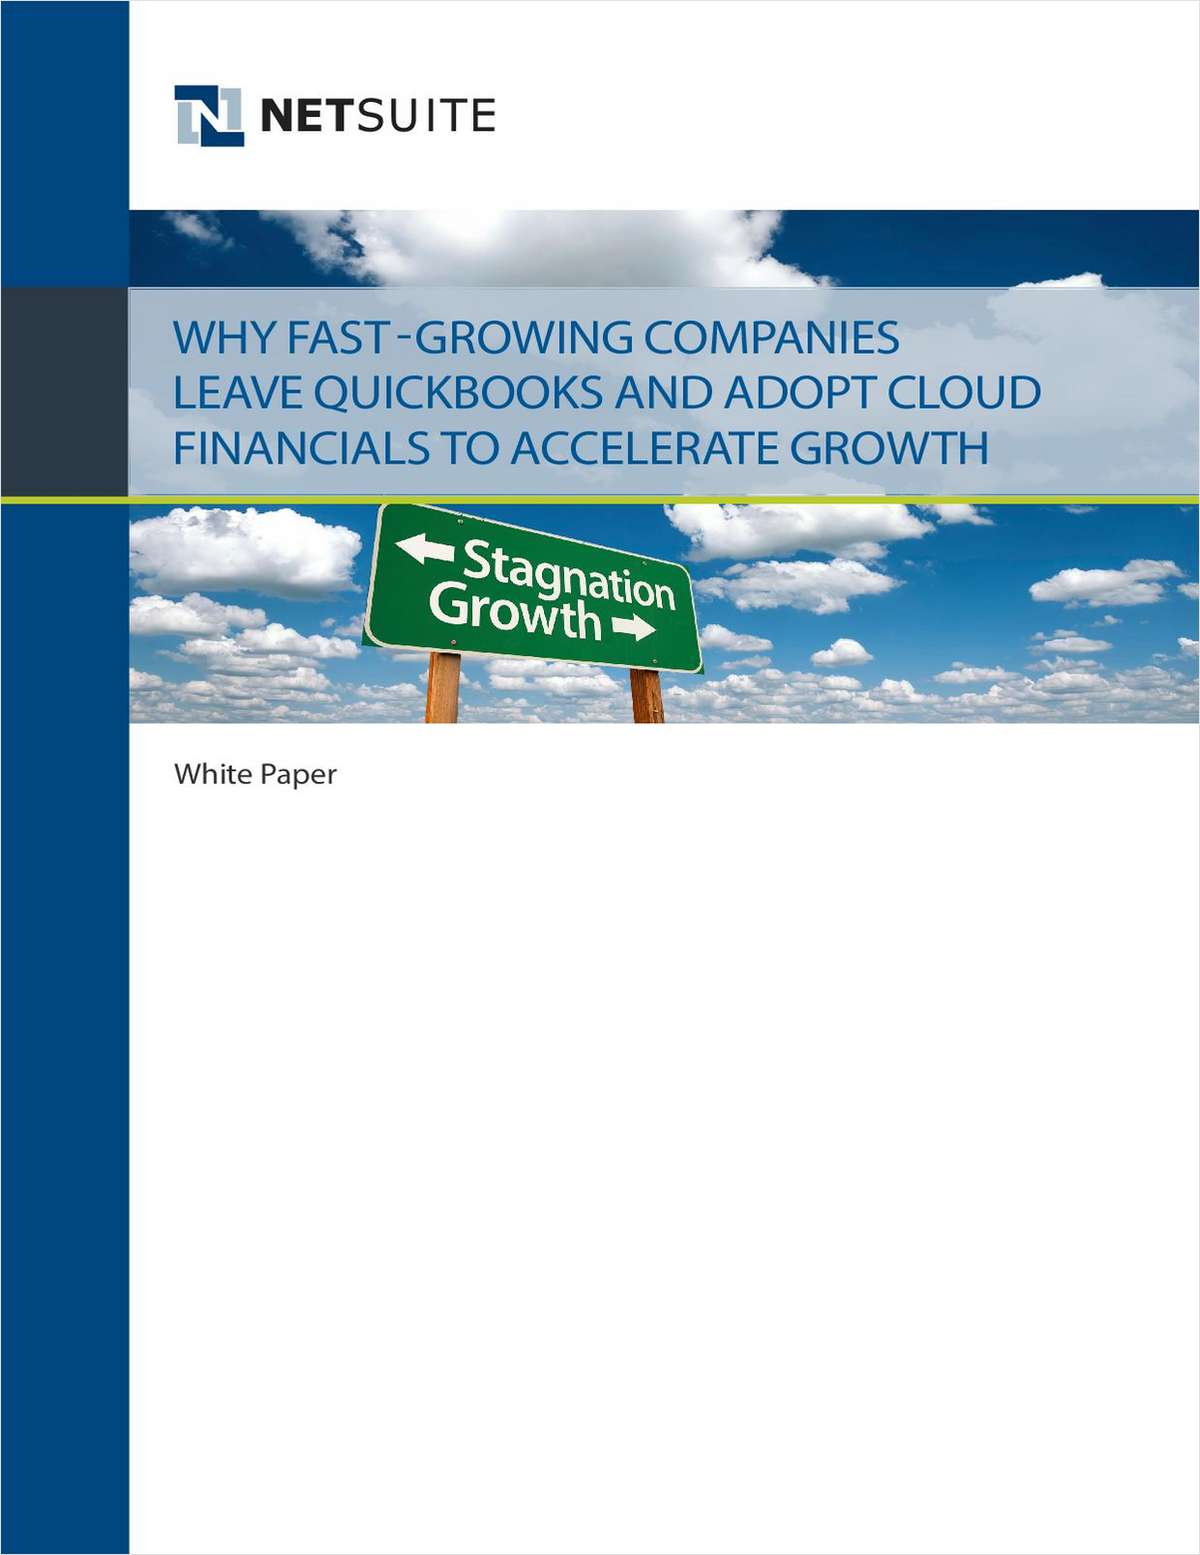 Why Fast-Growing Companies Leave QuickBooks and Adopt Cloud Financials to Accelerate Growth